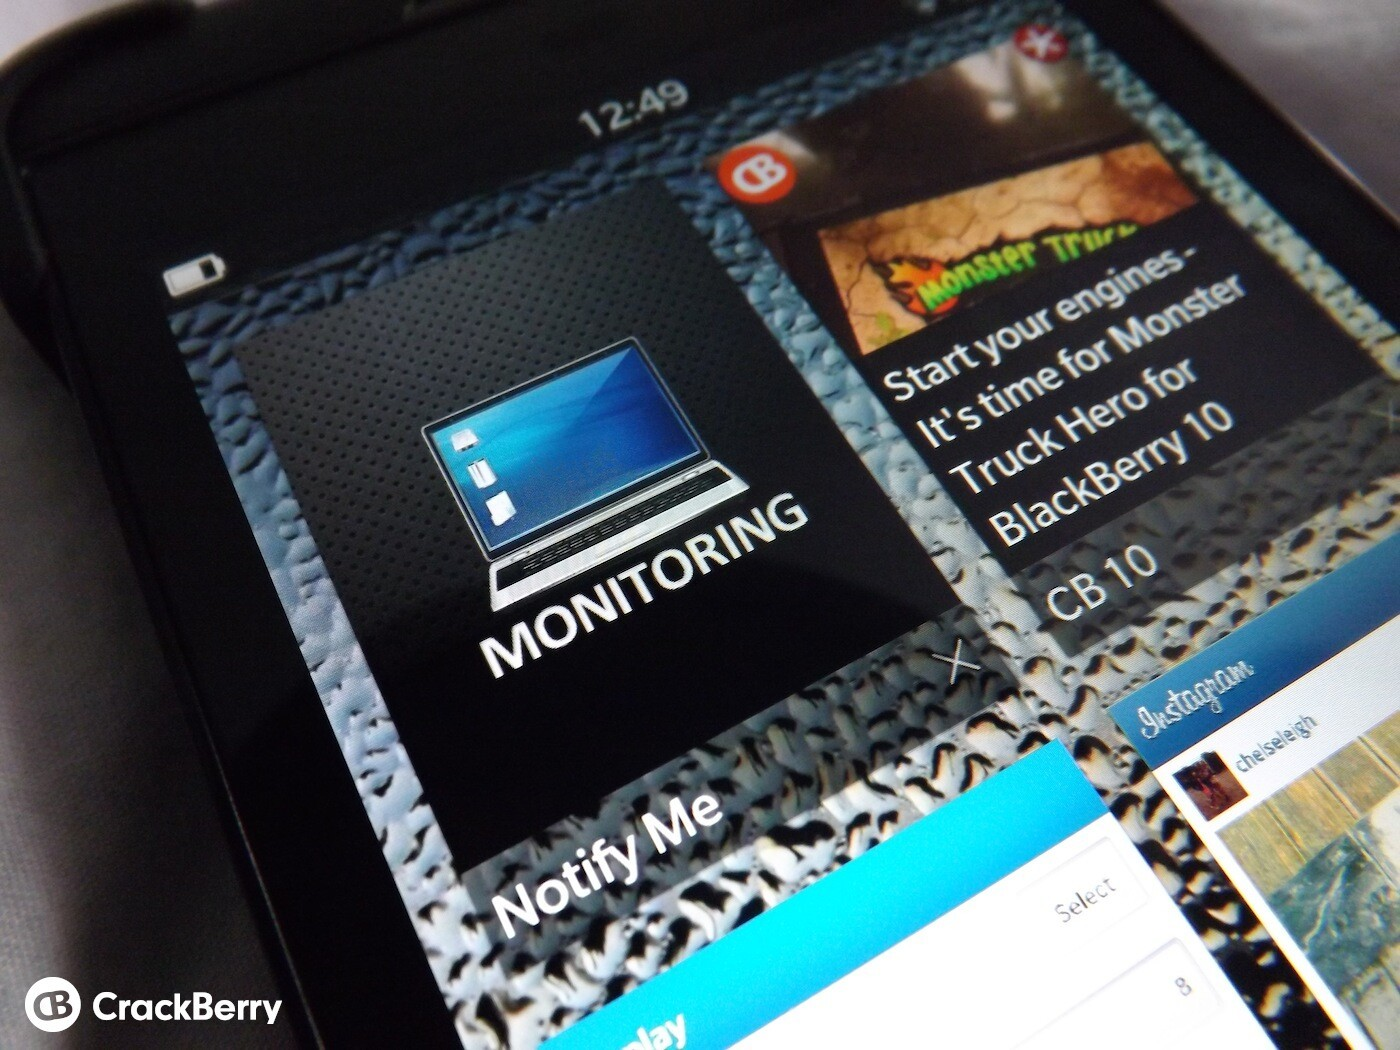 Notify Me for BlackBerry 10